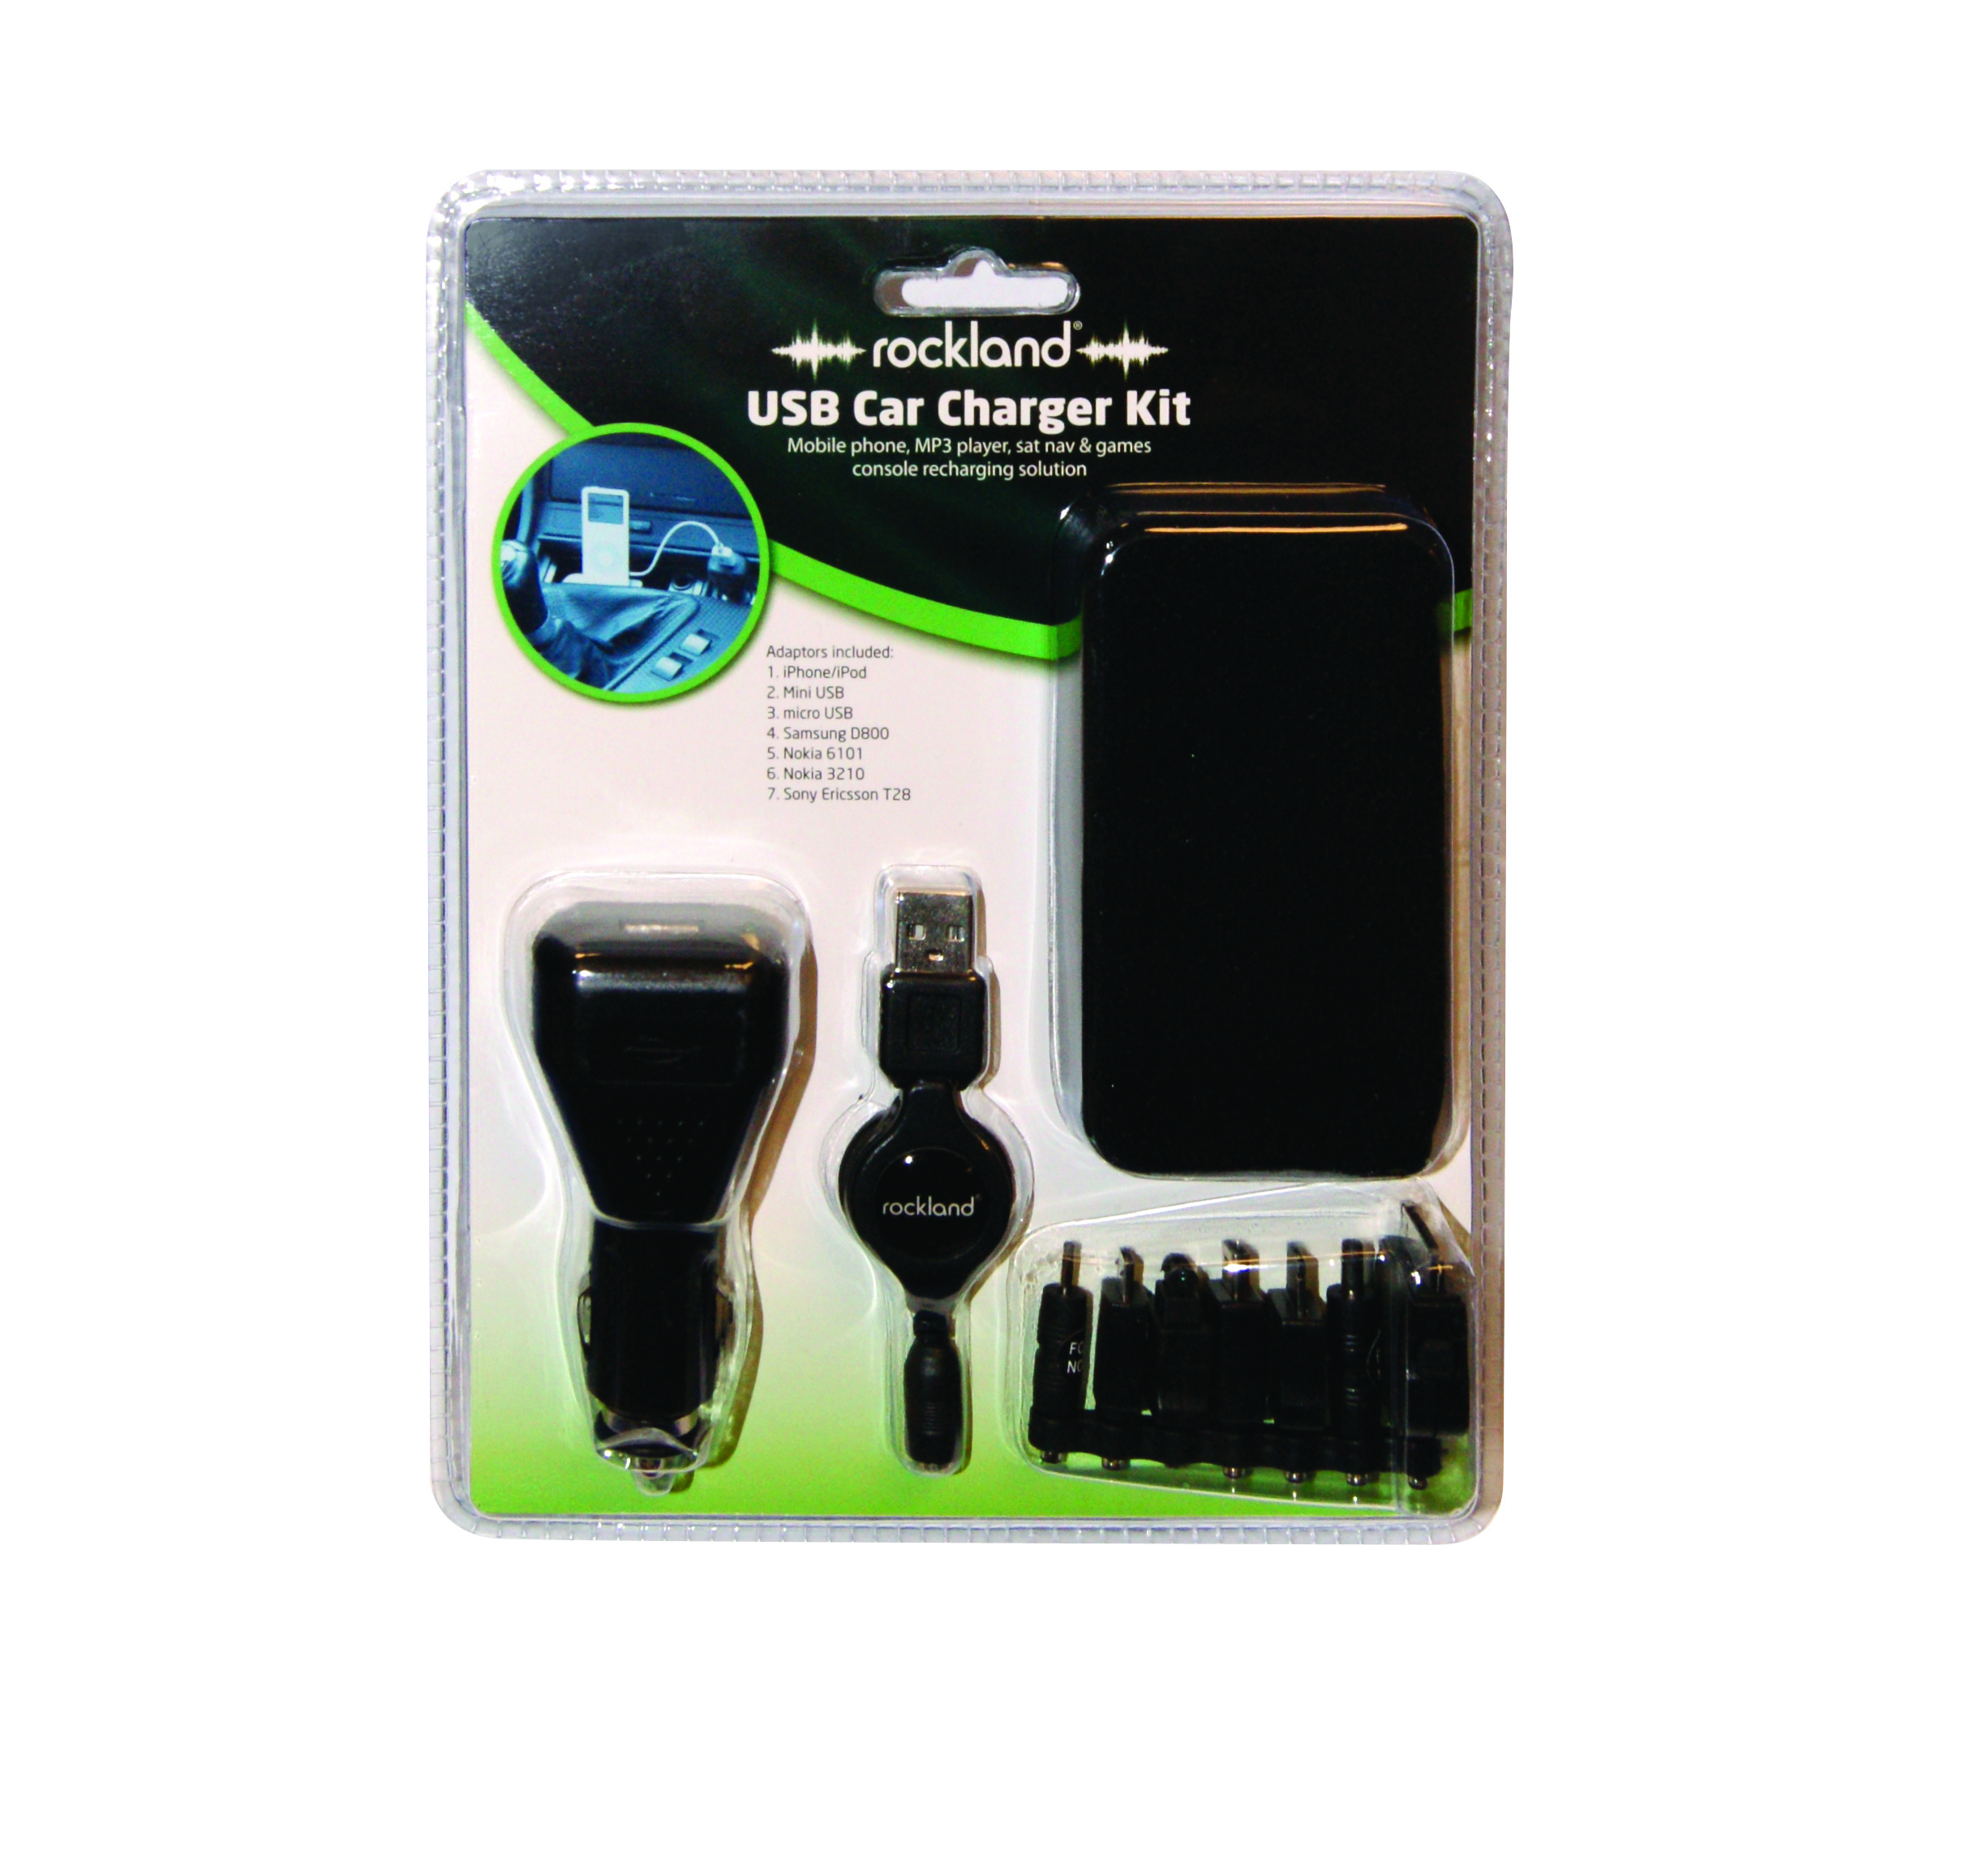 8x Car Charger Kit Inc IPhone F84559 Rockland Genuine